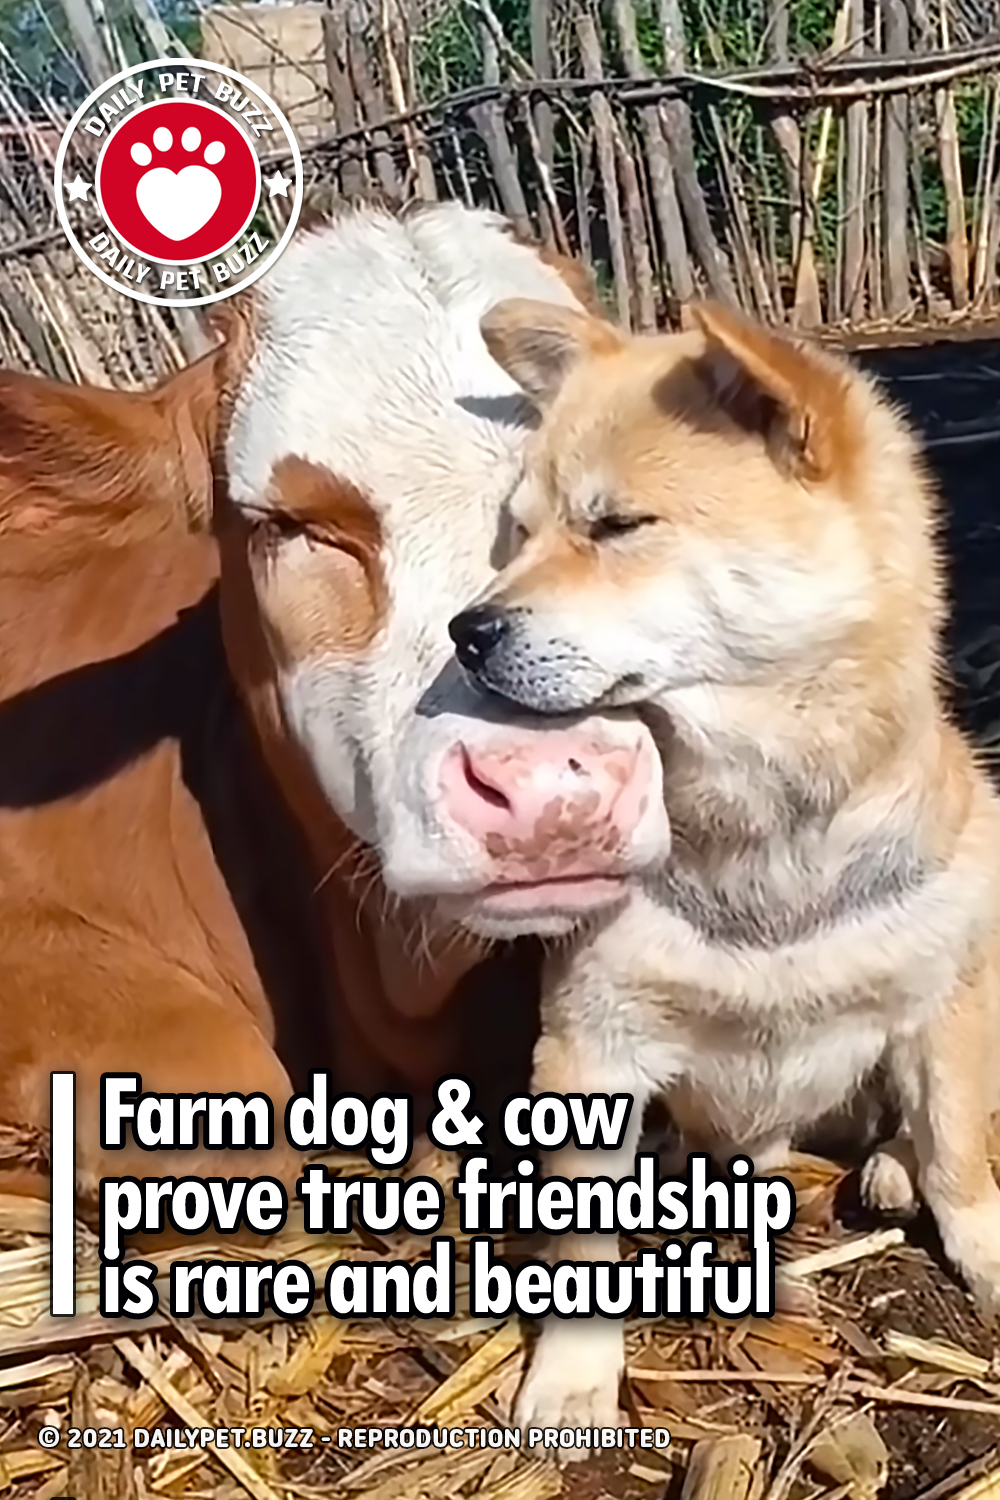 Farm dog & cow prove true friendship is rare and beautiful